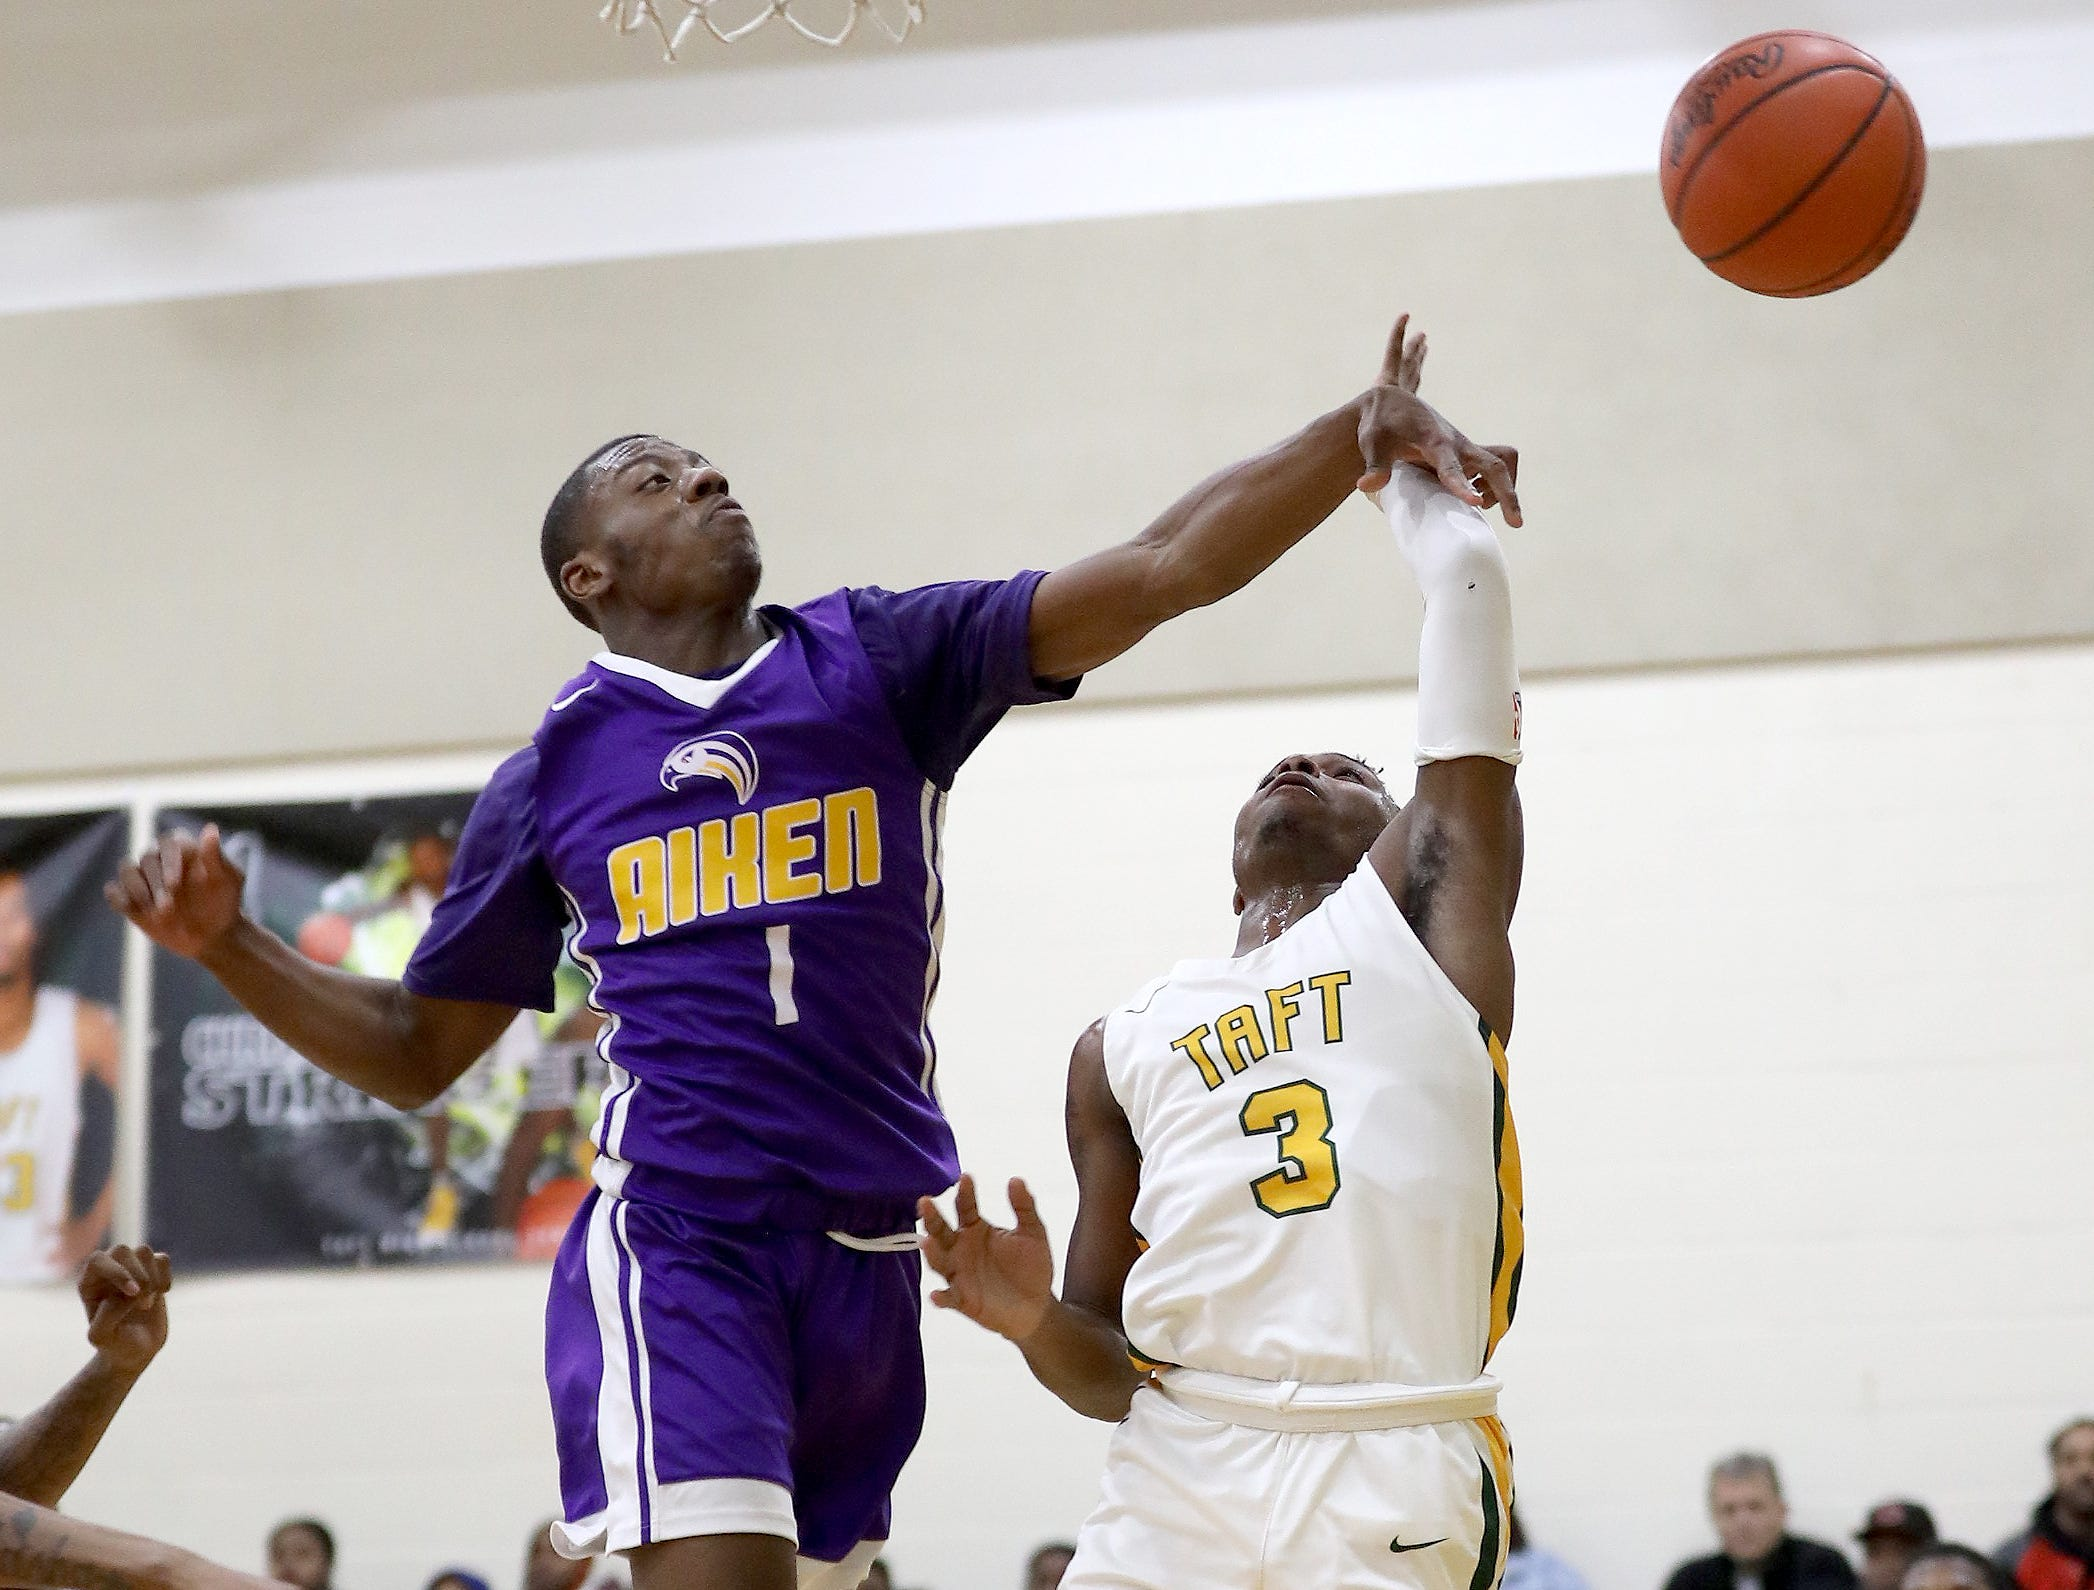 Taft guard Demarco Bradley has his shot blocked by Aiken guard D'Arris Dean.